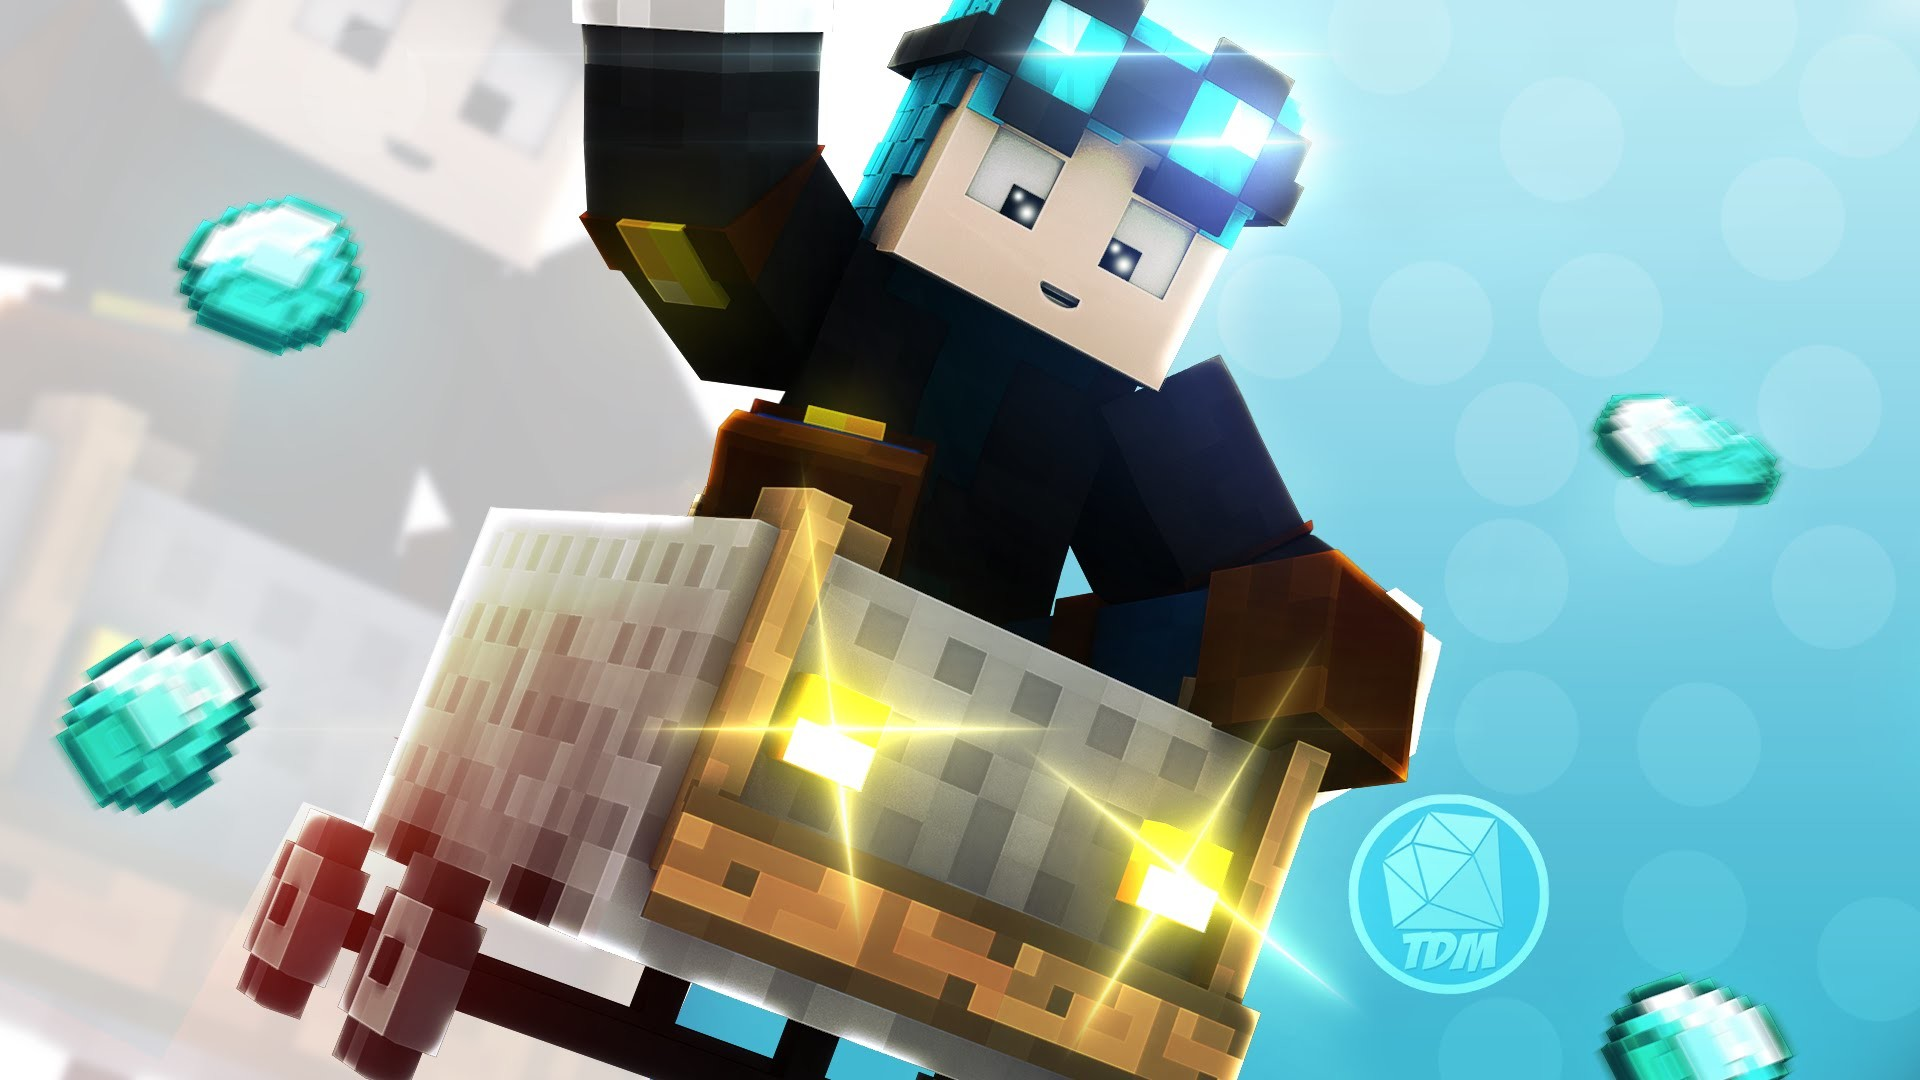 Horror Animated Wallpapers For Pc Dantdm Wallpapers 79 Images